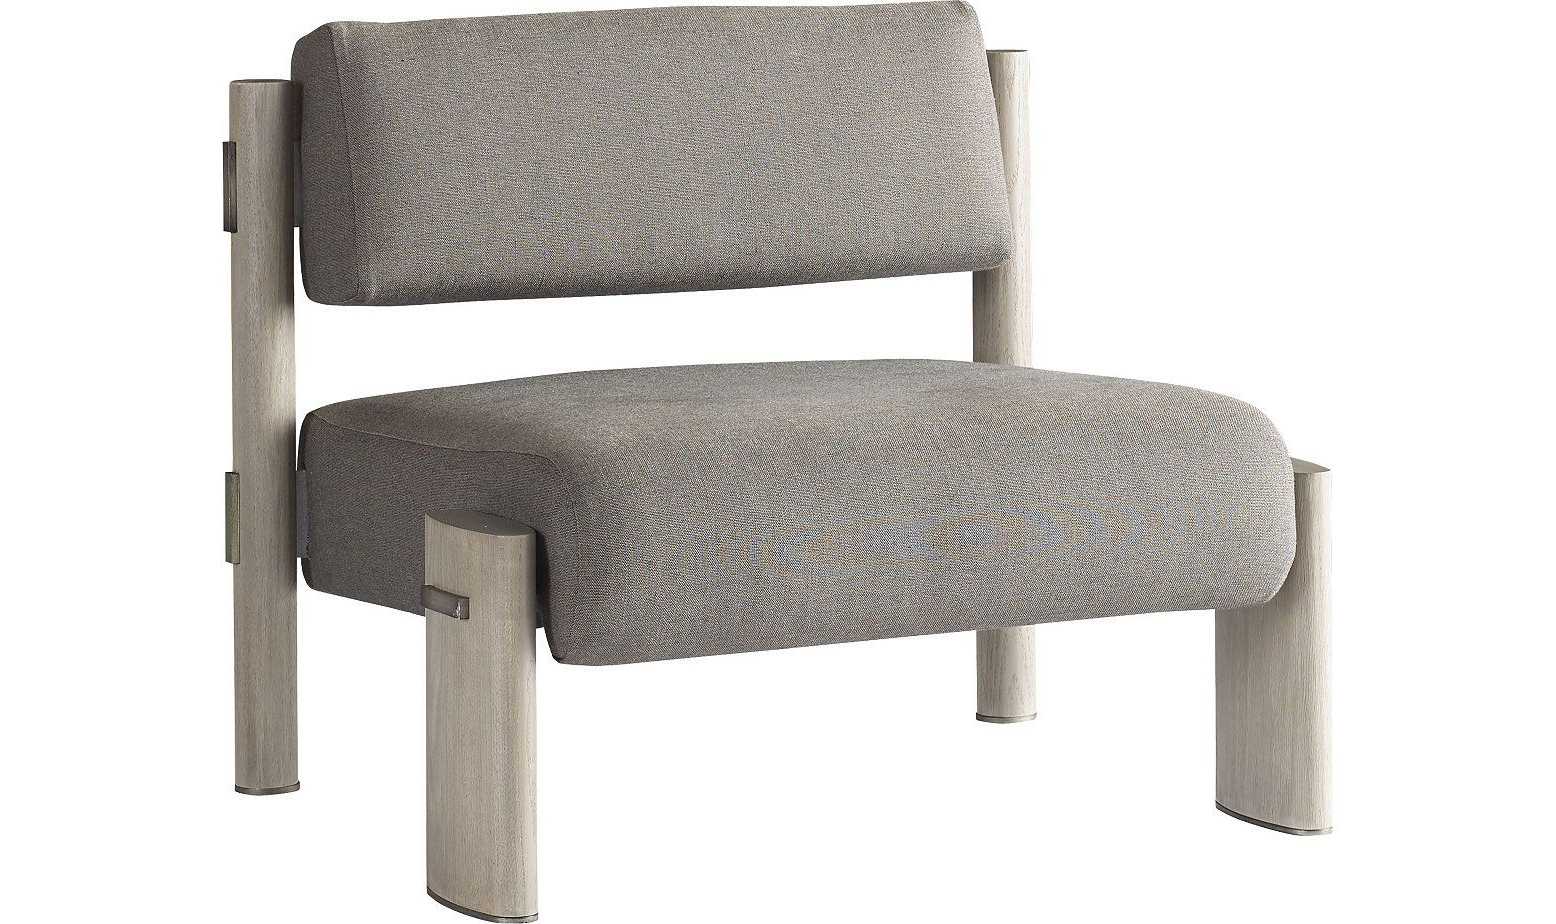 Mcguire Furniture Within Nichol Swivel Accent Chairs (View 8 of 20)